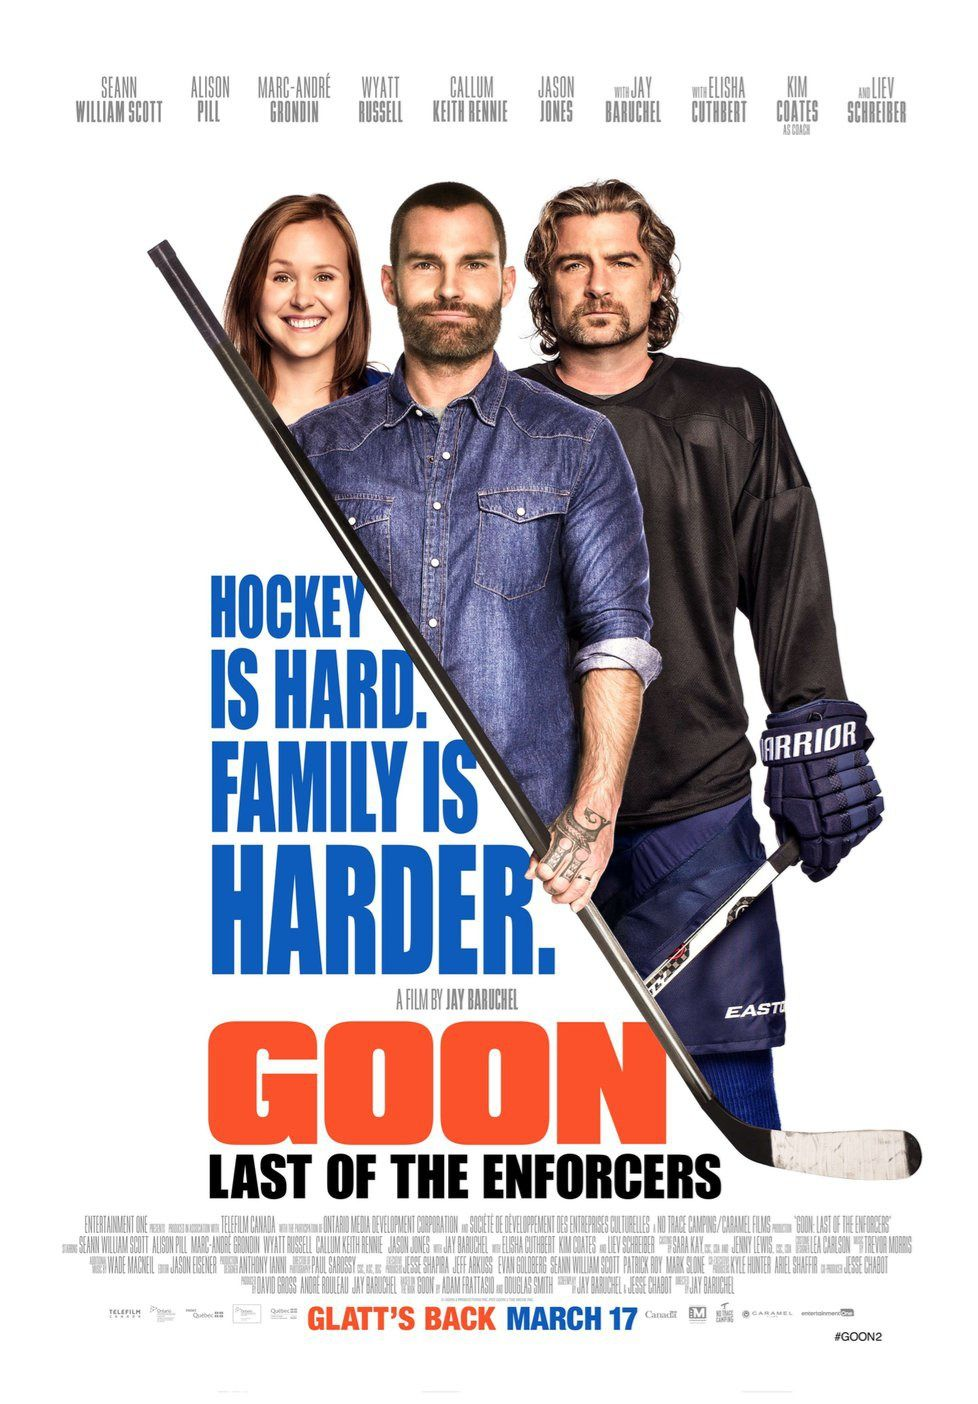 goon last of the enforcers movie poster with seann